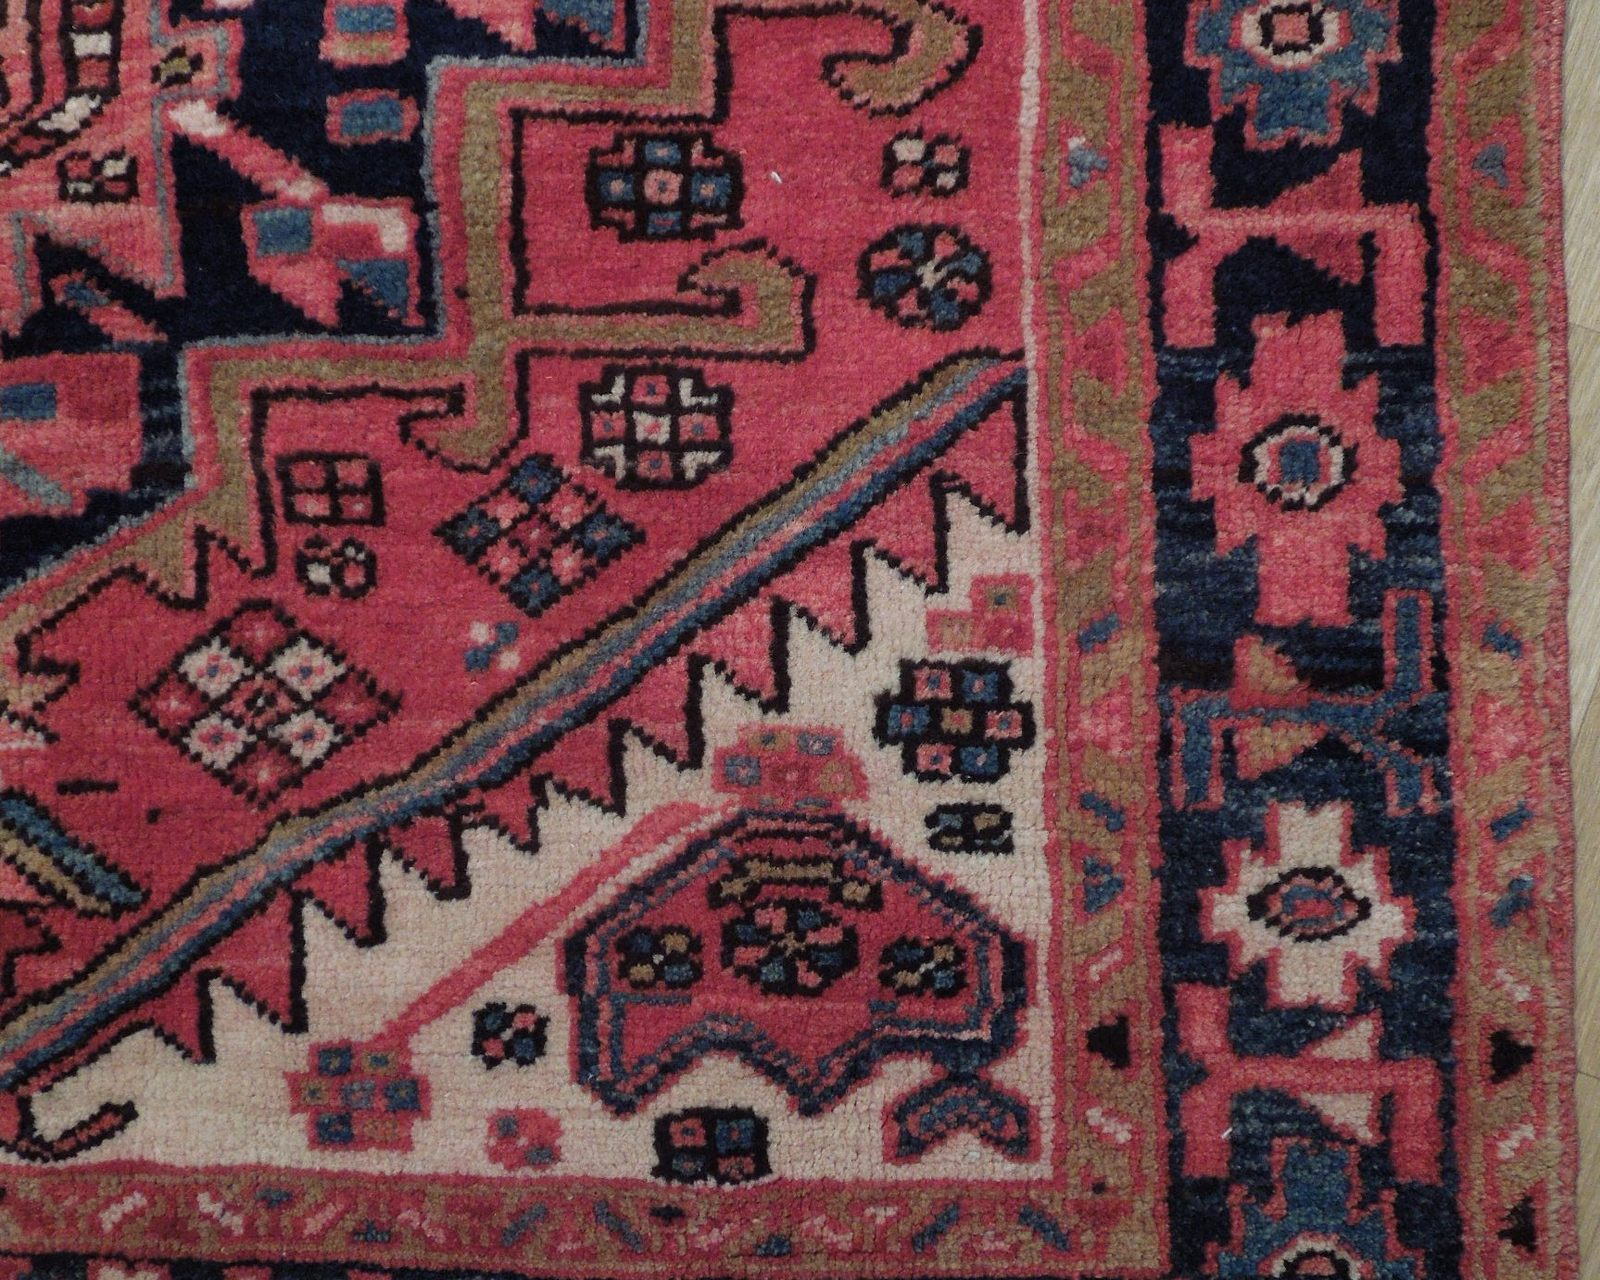 Tribal Inspired Olde Runner Persian Hand-Knotted 2' x 11' Red Heriz Wool Rug image 3